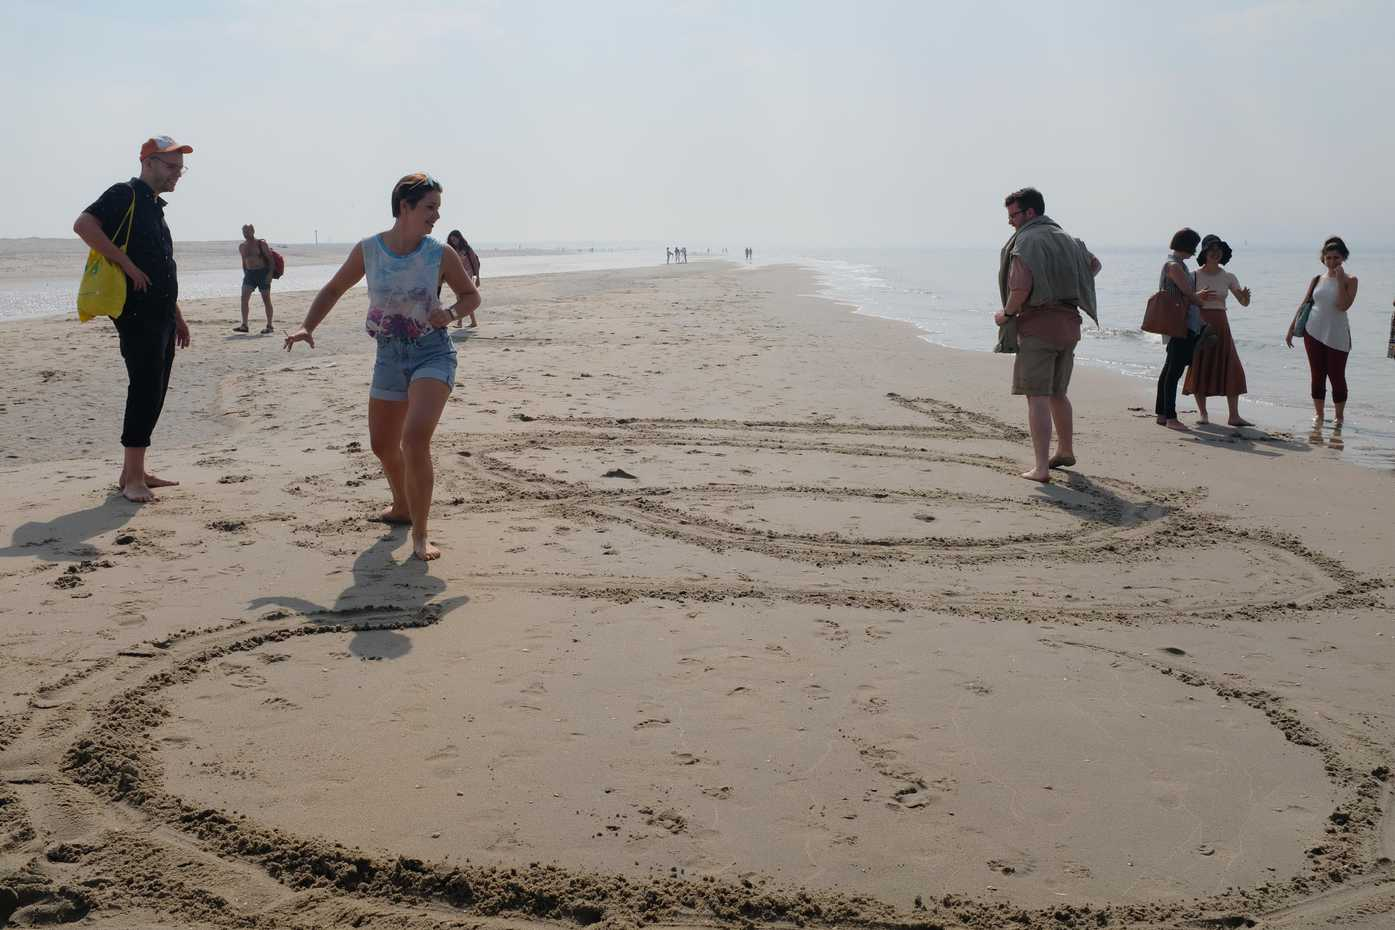 Drawing big letters in the sand. Cool.